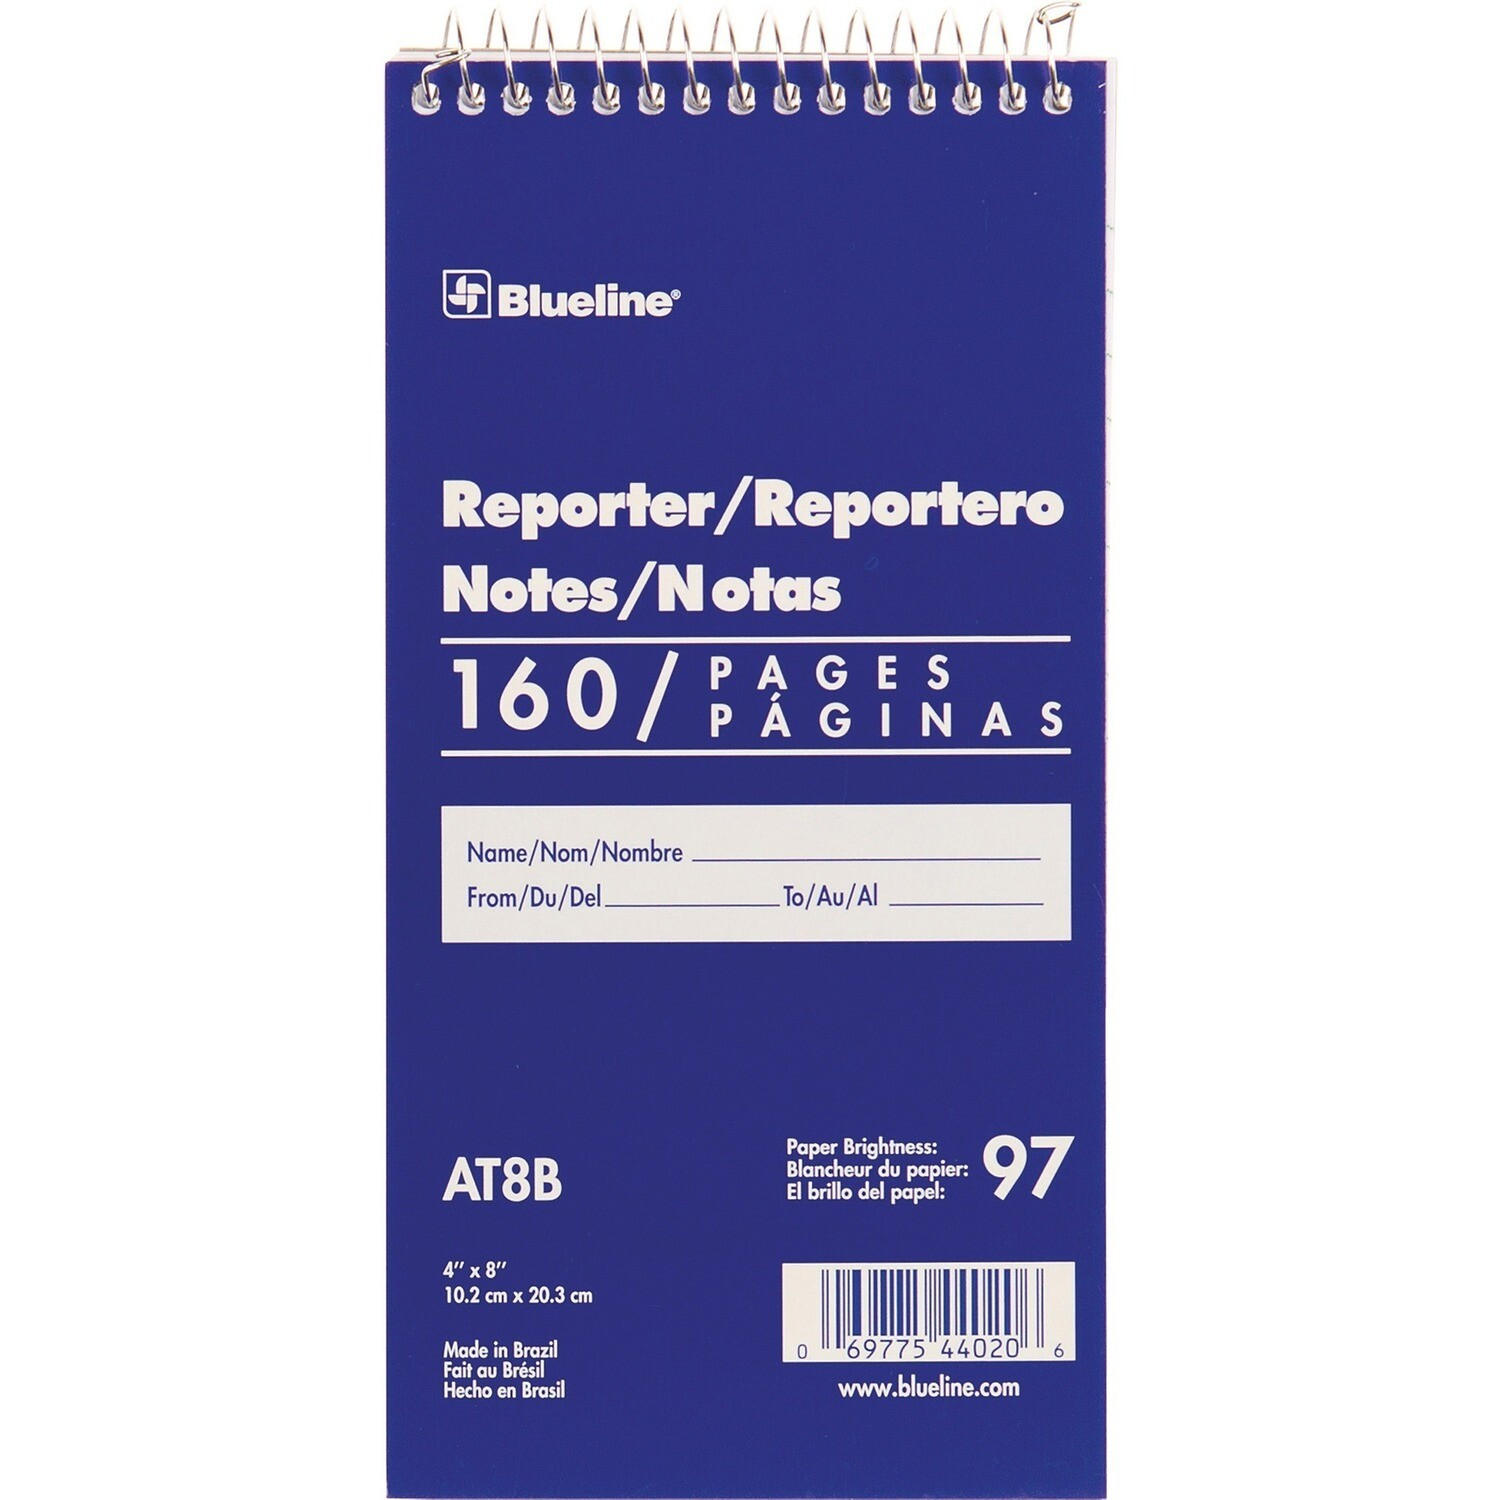 """Reporter Pad, Lined, 4"""" x 8"""" Blue, 160 Pages, Blueline, BLI/AT8B"""